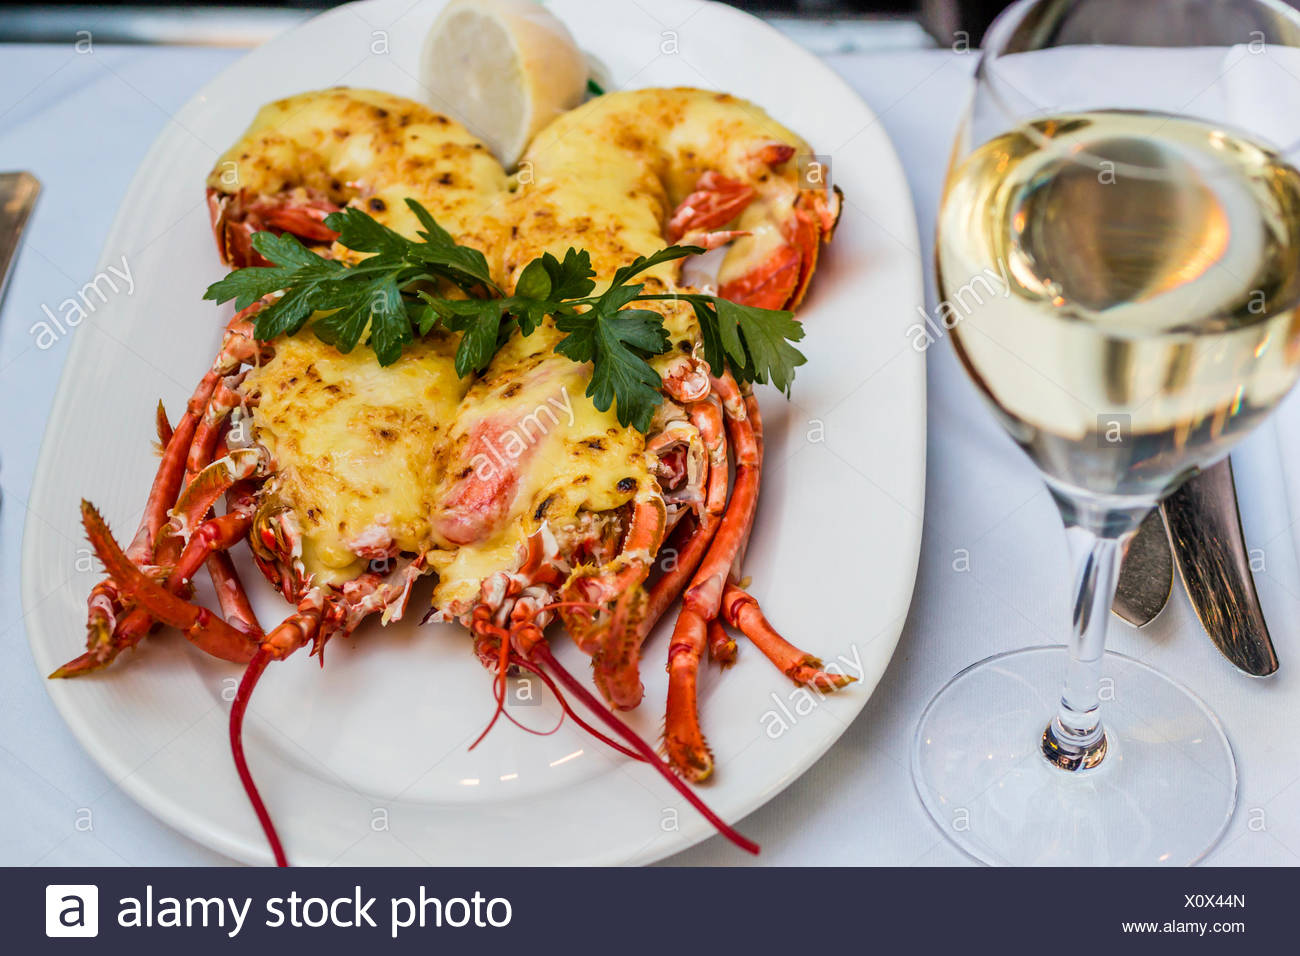 Lobster Thermidor Stock Photos & Lobster Thermidor Stock ...